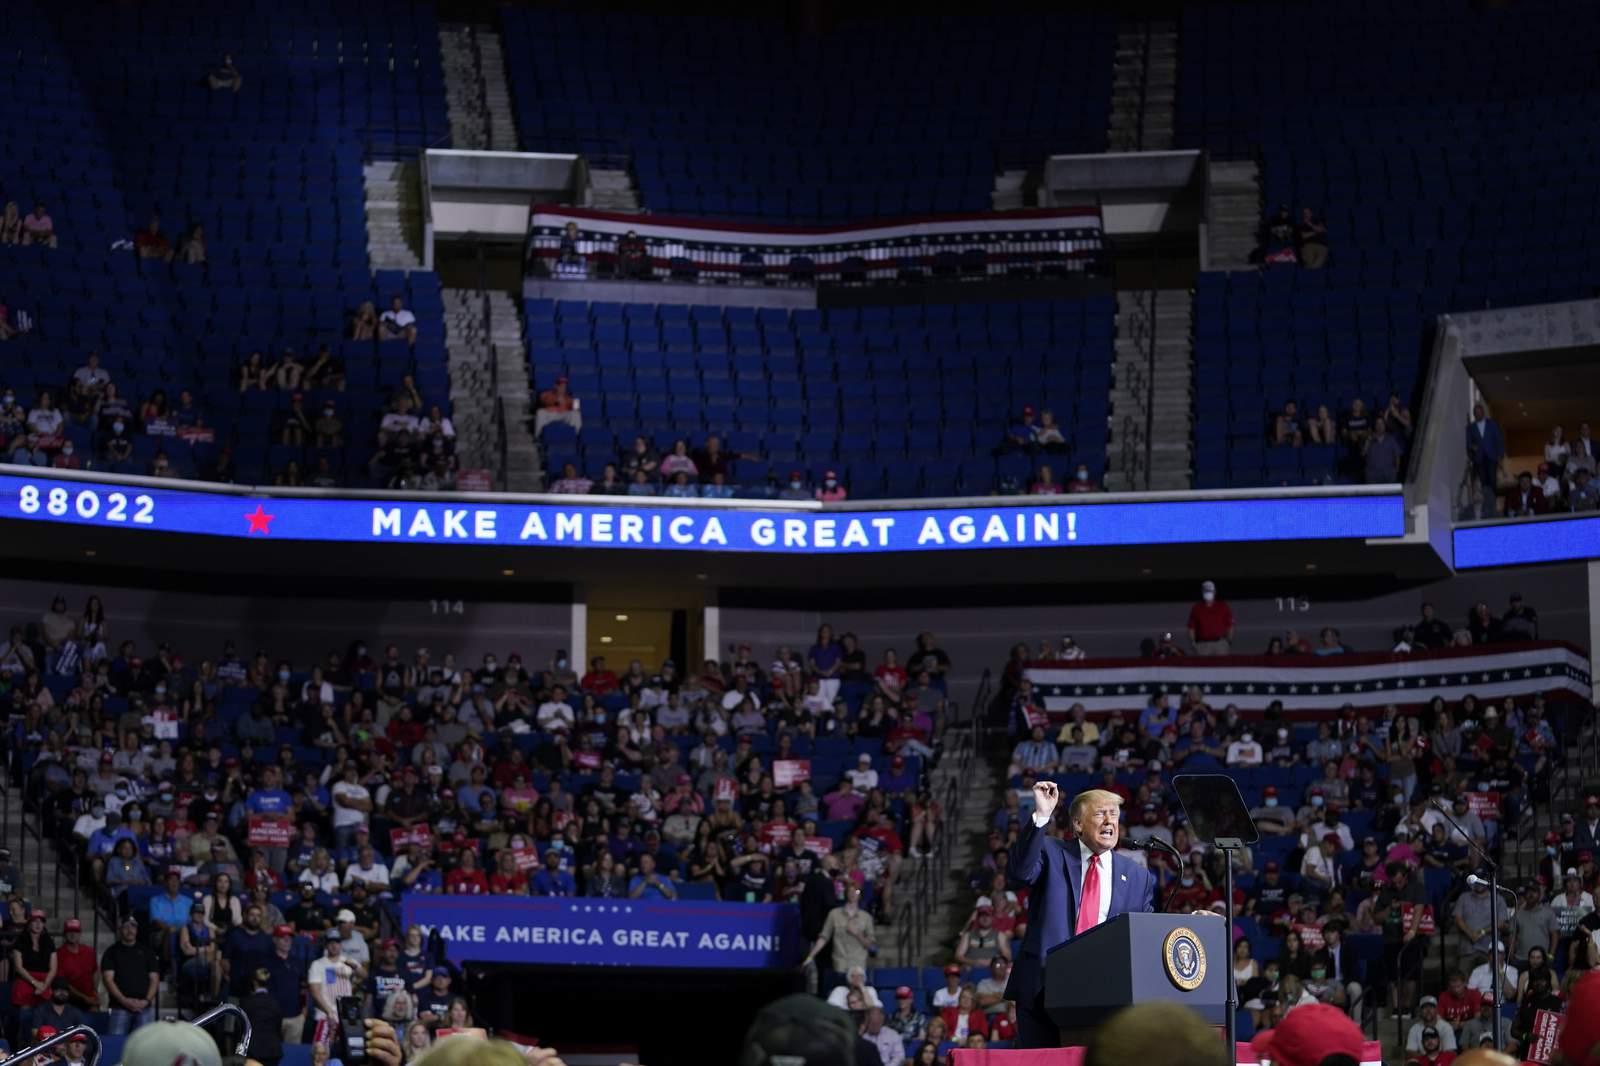 Trump comeback rally in Tulsa features empty seats, staff infections